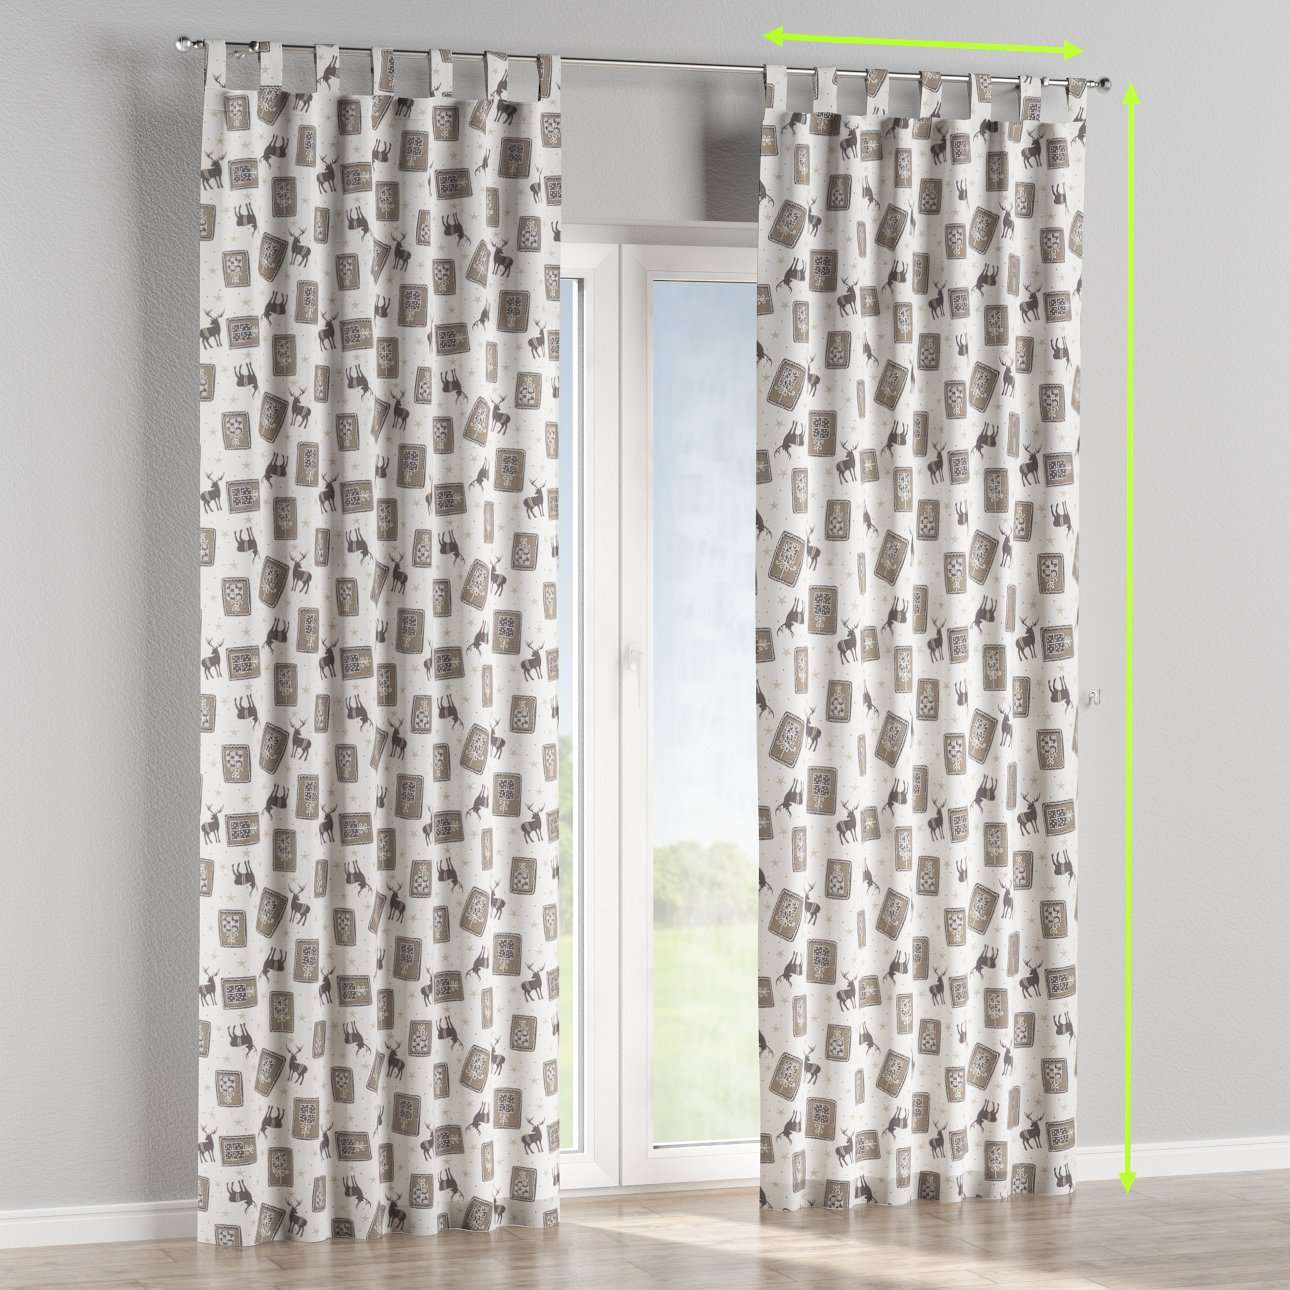 Tab top curtains in collection Christmas, fabric: 630-10